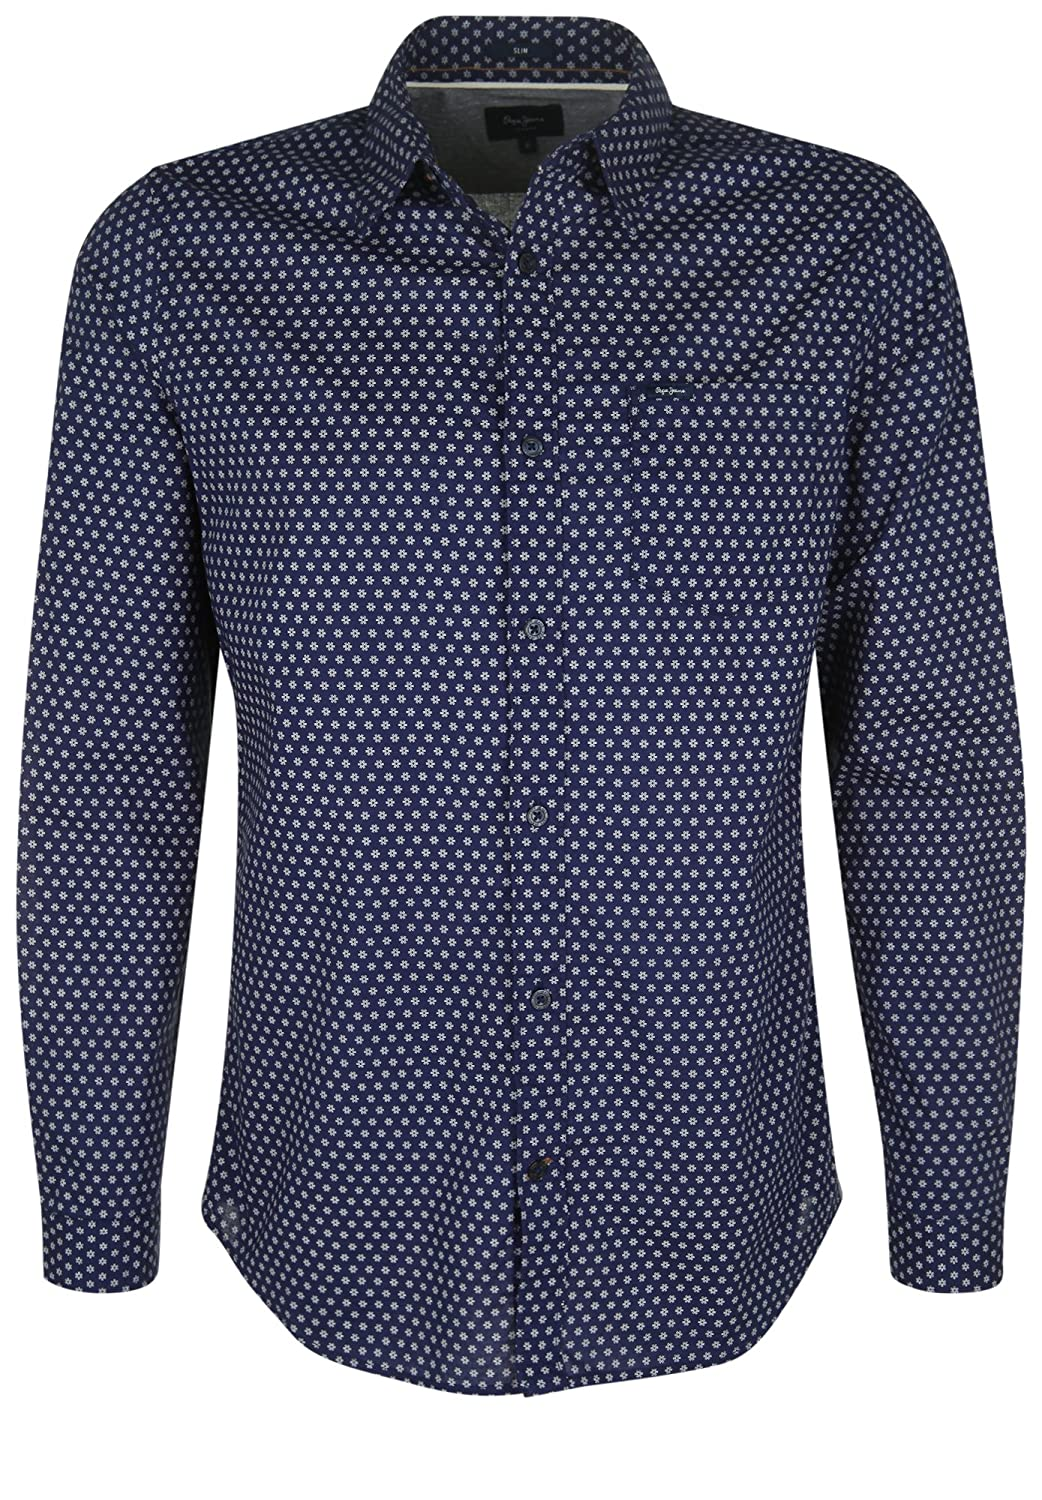 Pepe Jeans Coates Camisa para Hombre